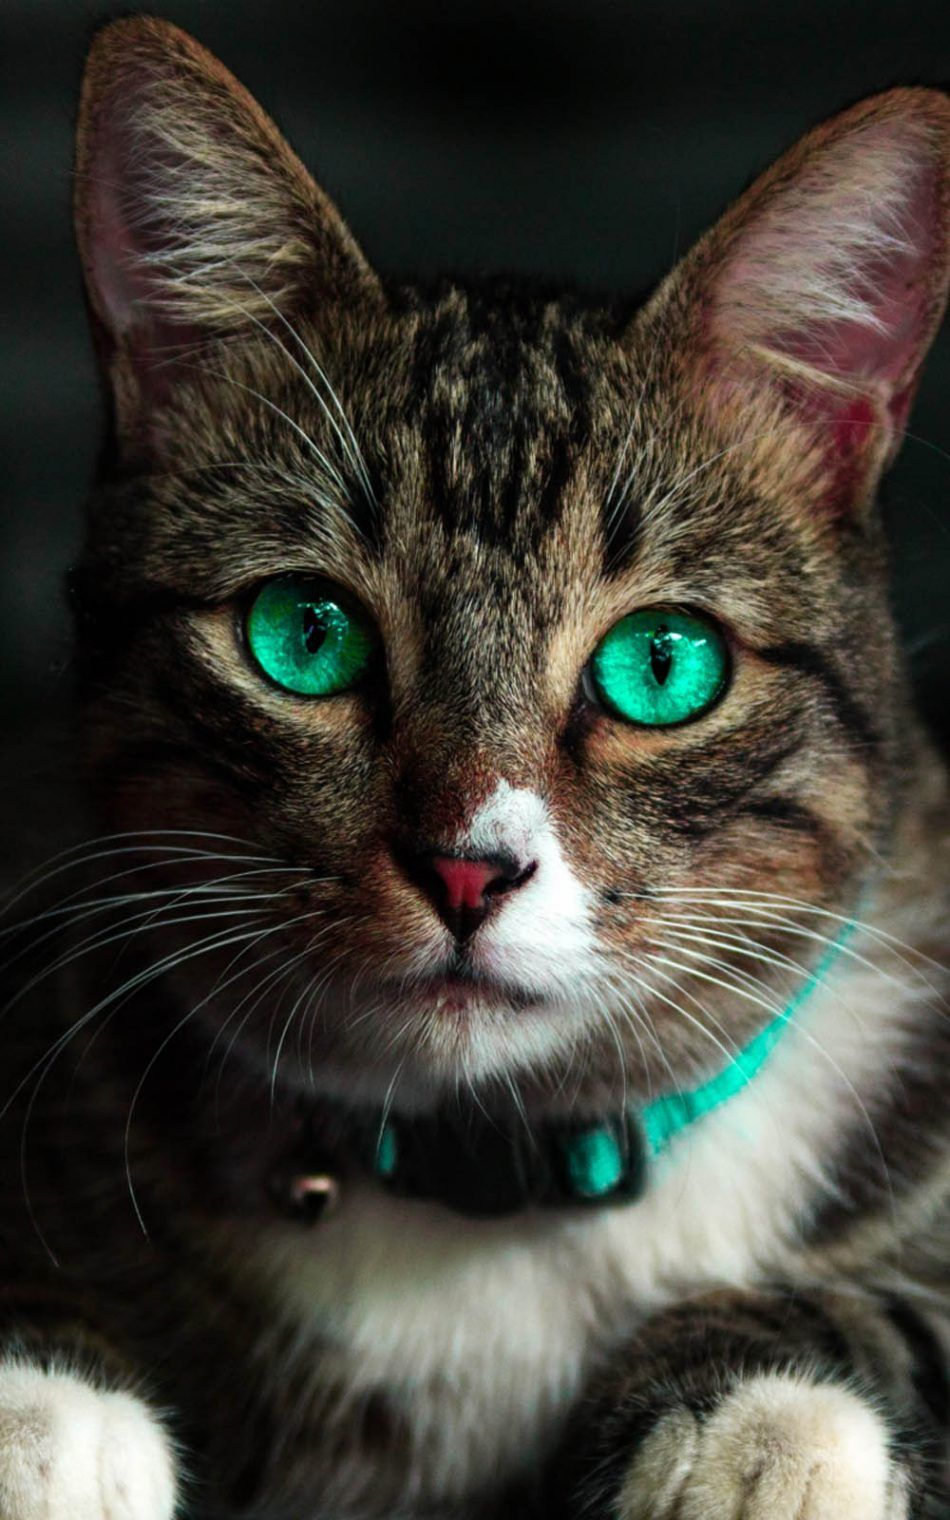 Green Eyed Cat 4k Ultra Hd Mobile Wallpaper Green Eyed Cat Animals Baby Cats